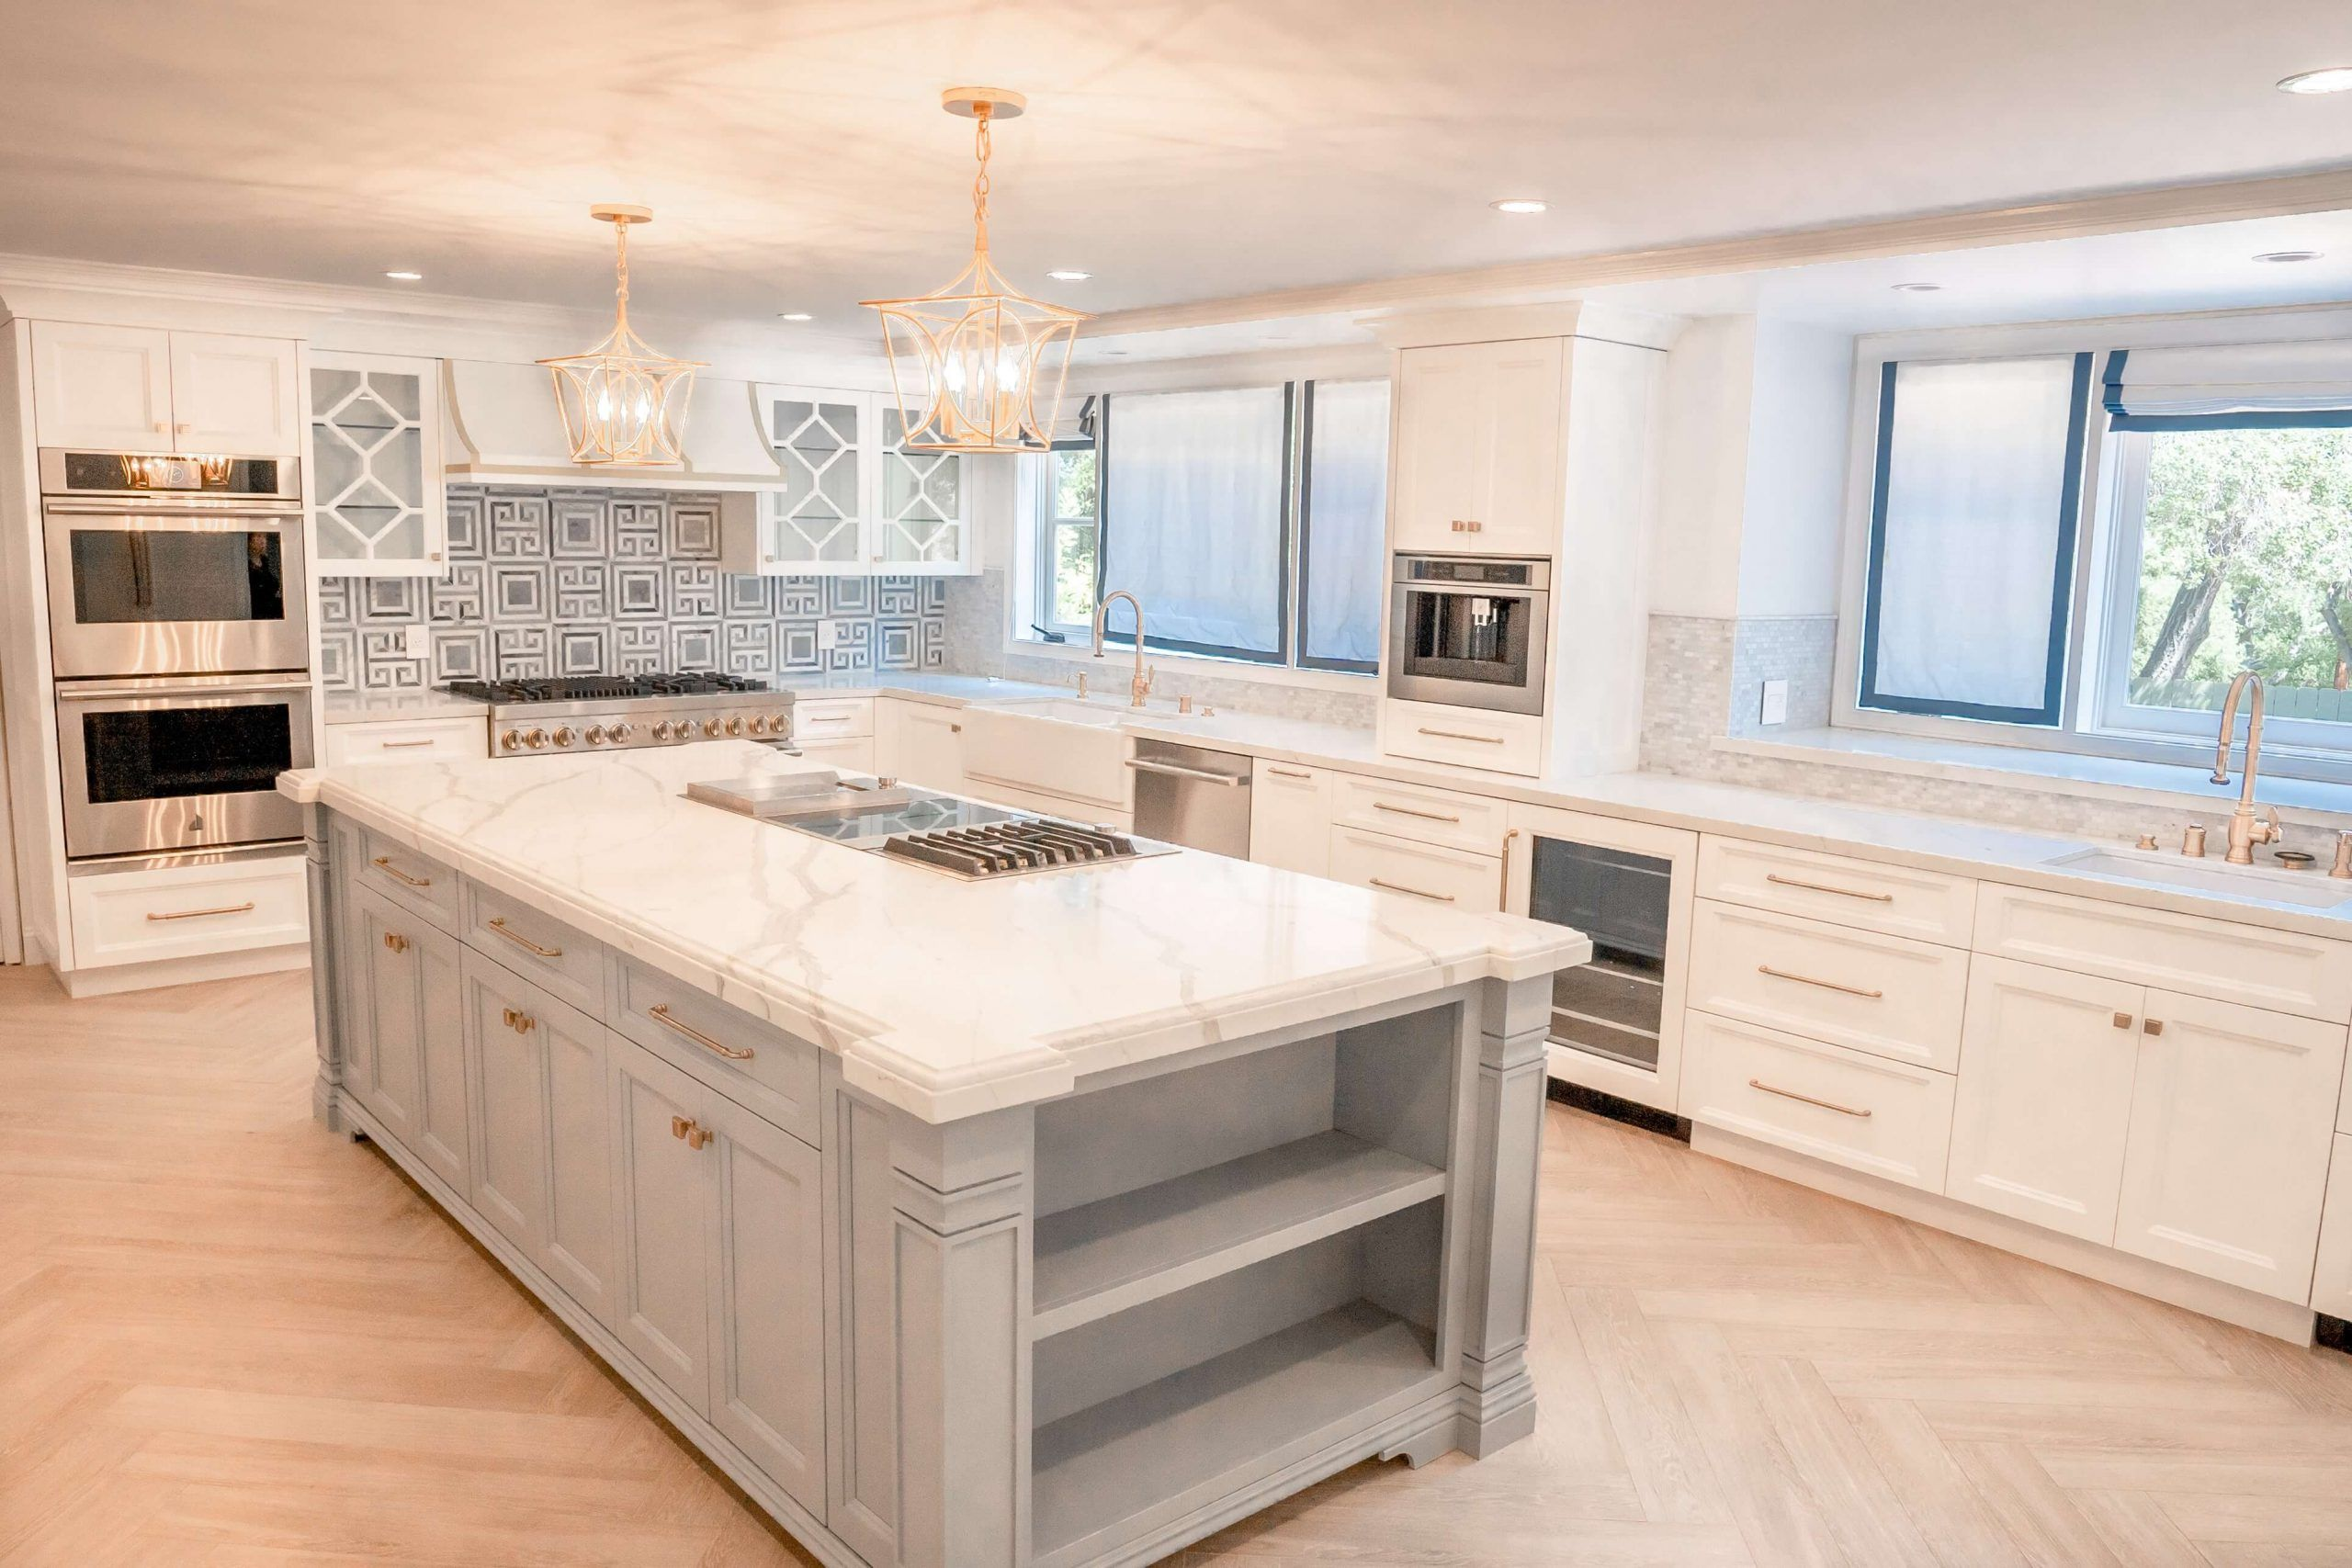 Kitchen Cabinets Countertops Monthly Specials In Wayne Nj In 2020 Cost Of Kitchen Countertops Kitchen Layout Kitchen Remodel